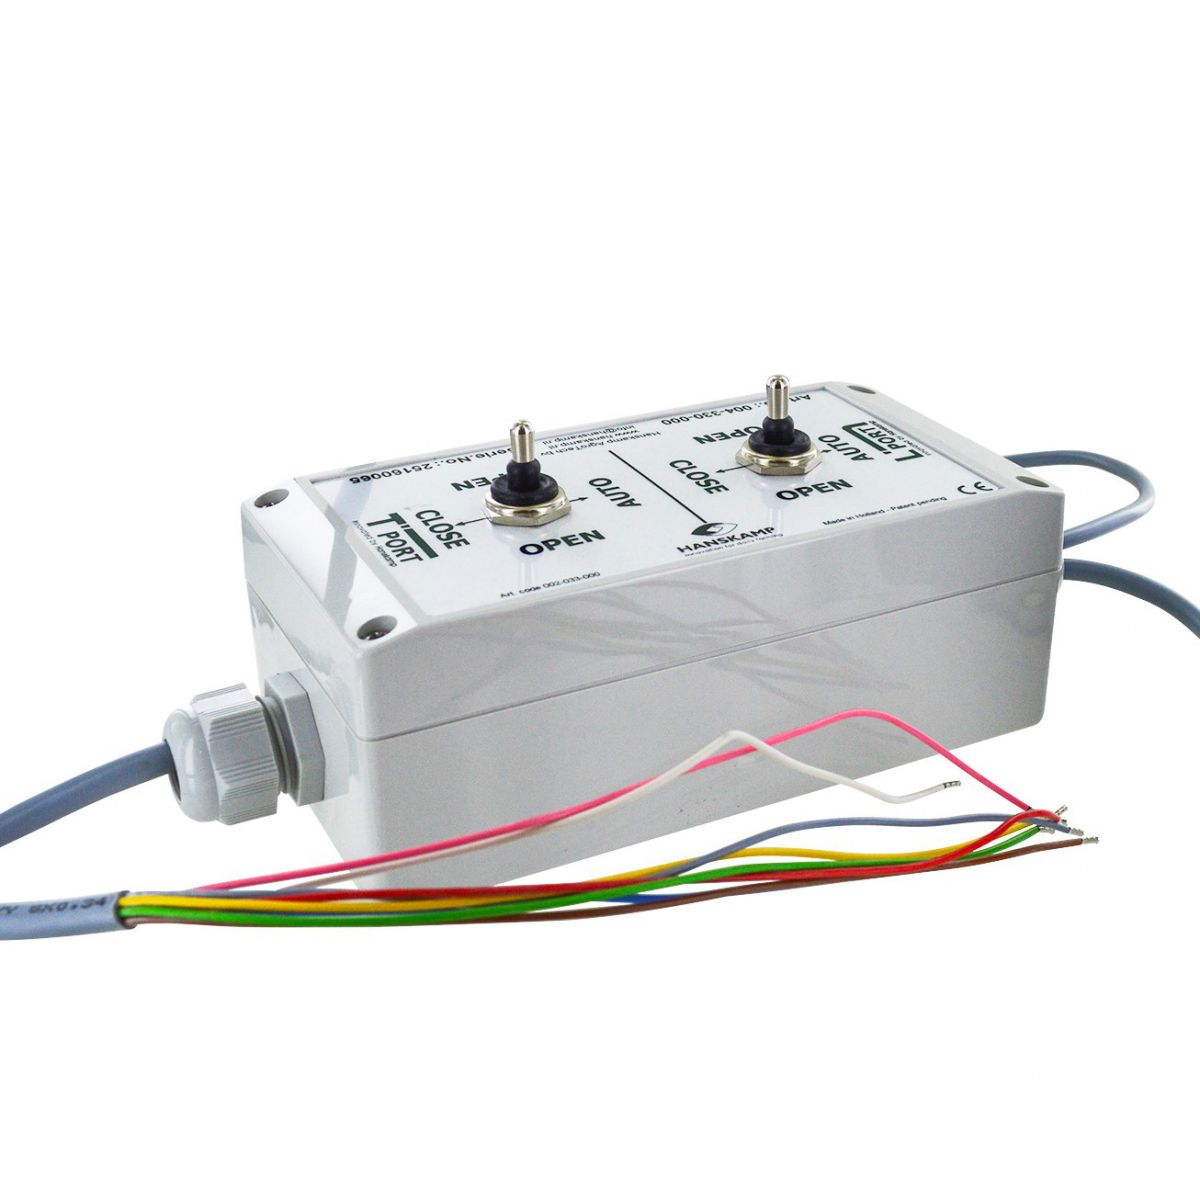 control box tport front spider with double cable gland with 2x 3position switch